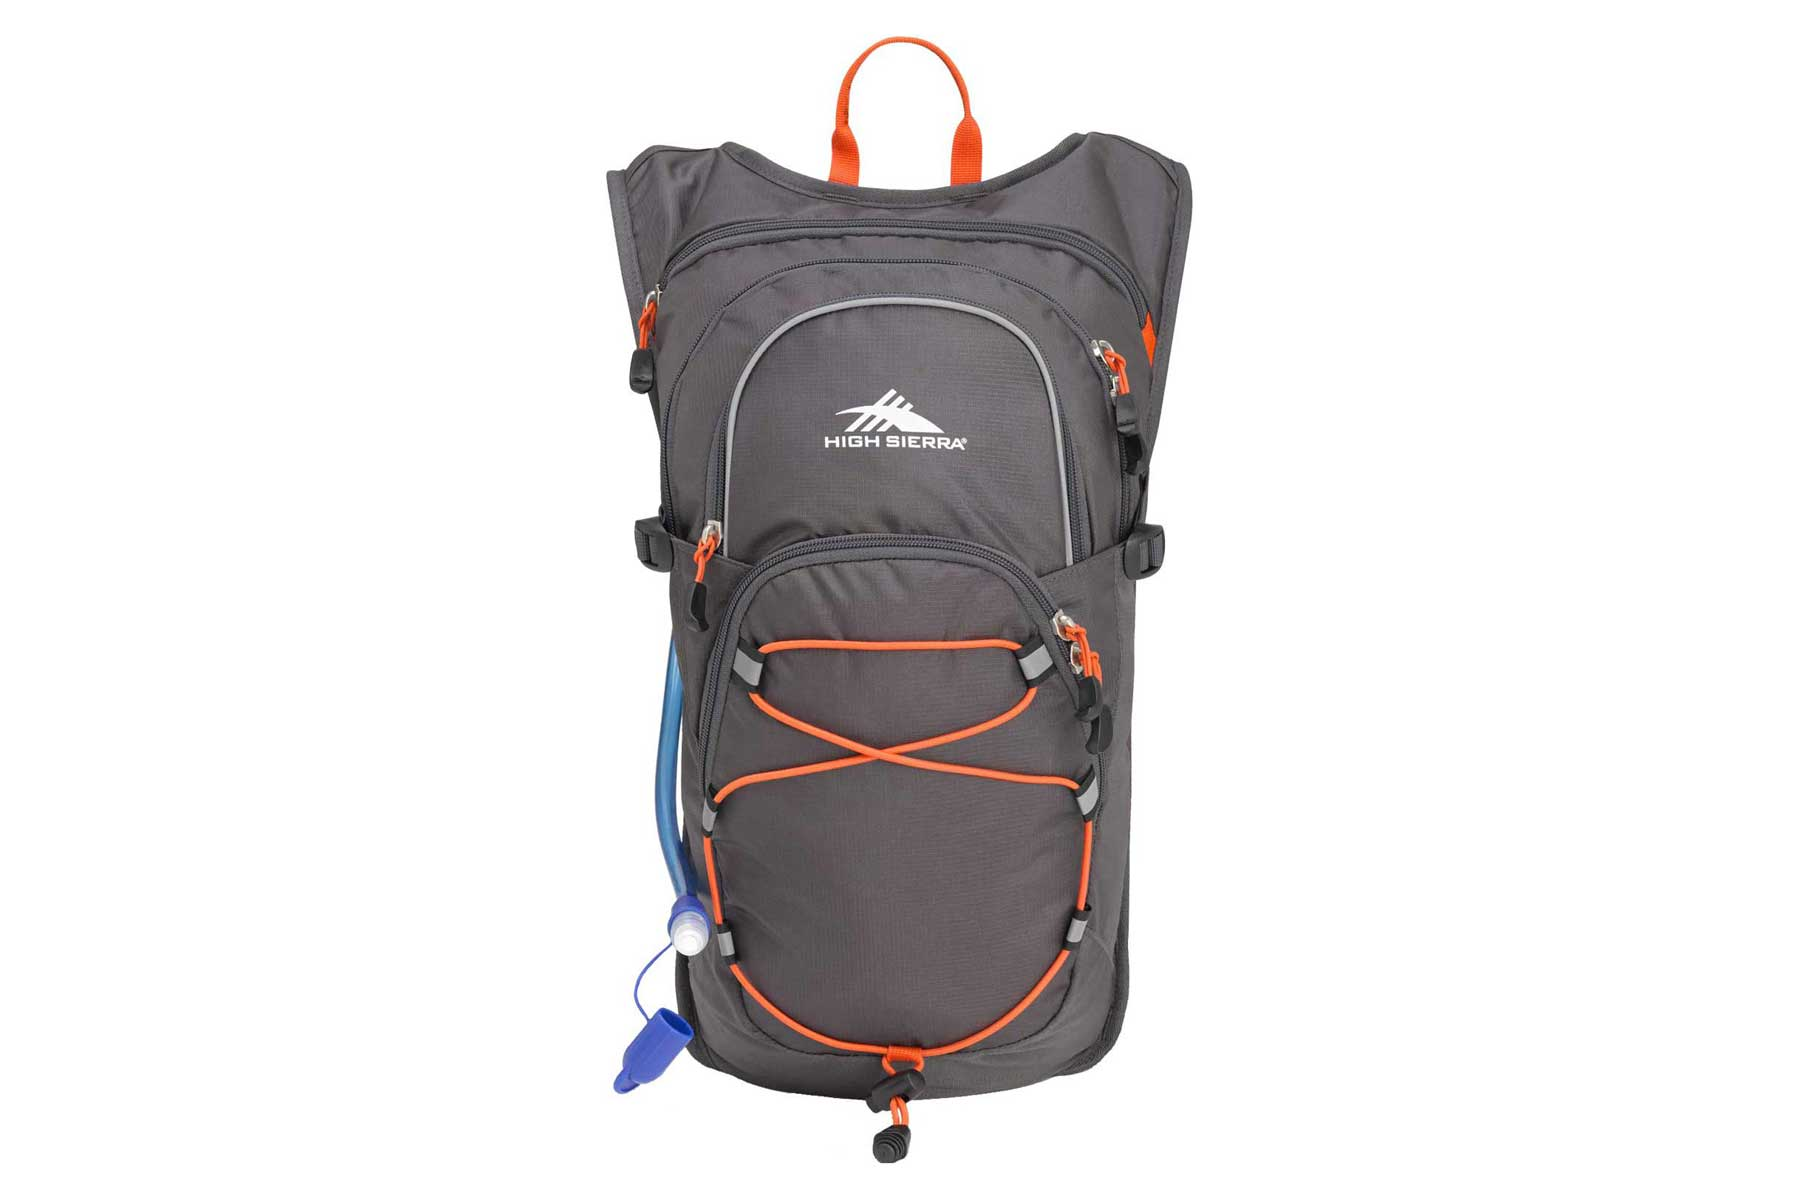 High Sierra 8L Hydration Pack